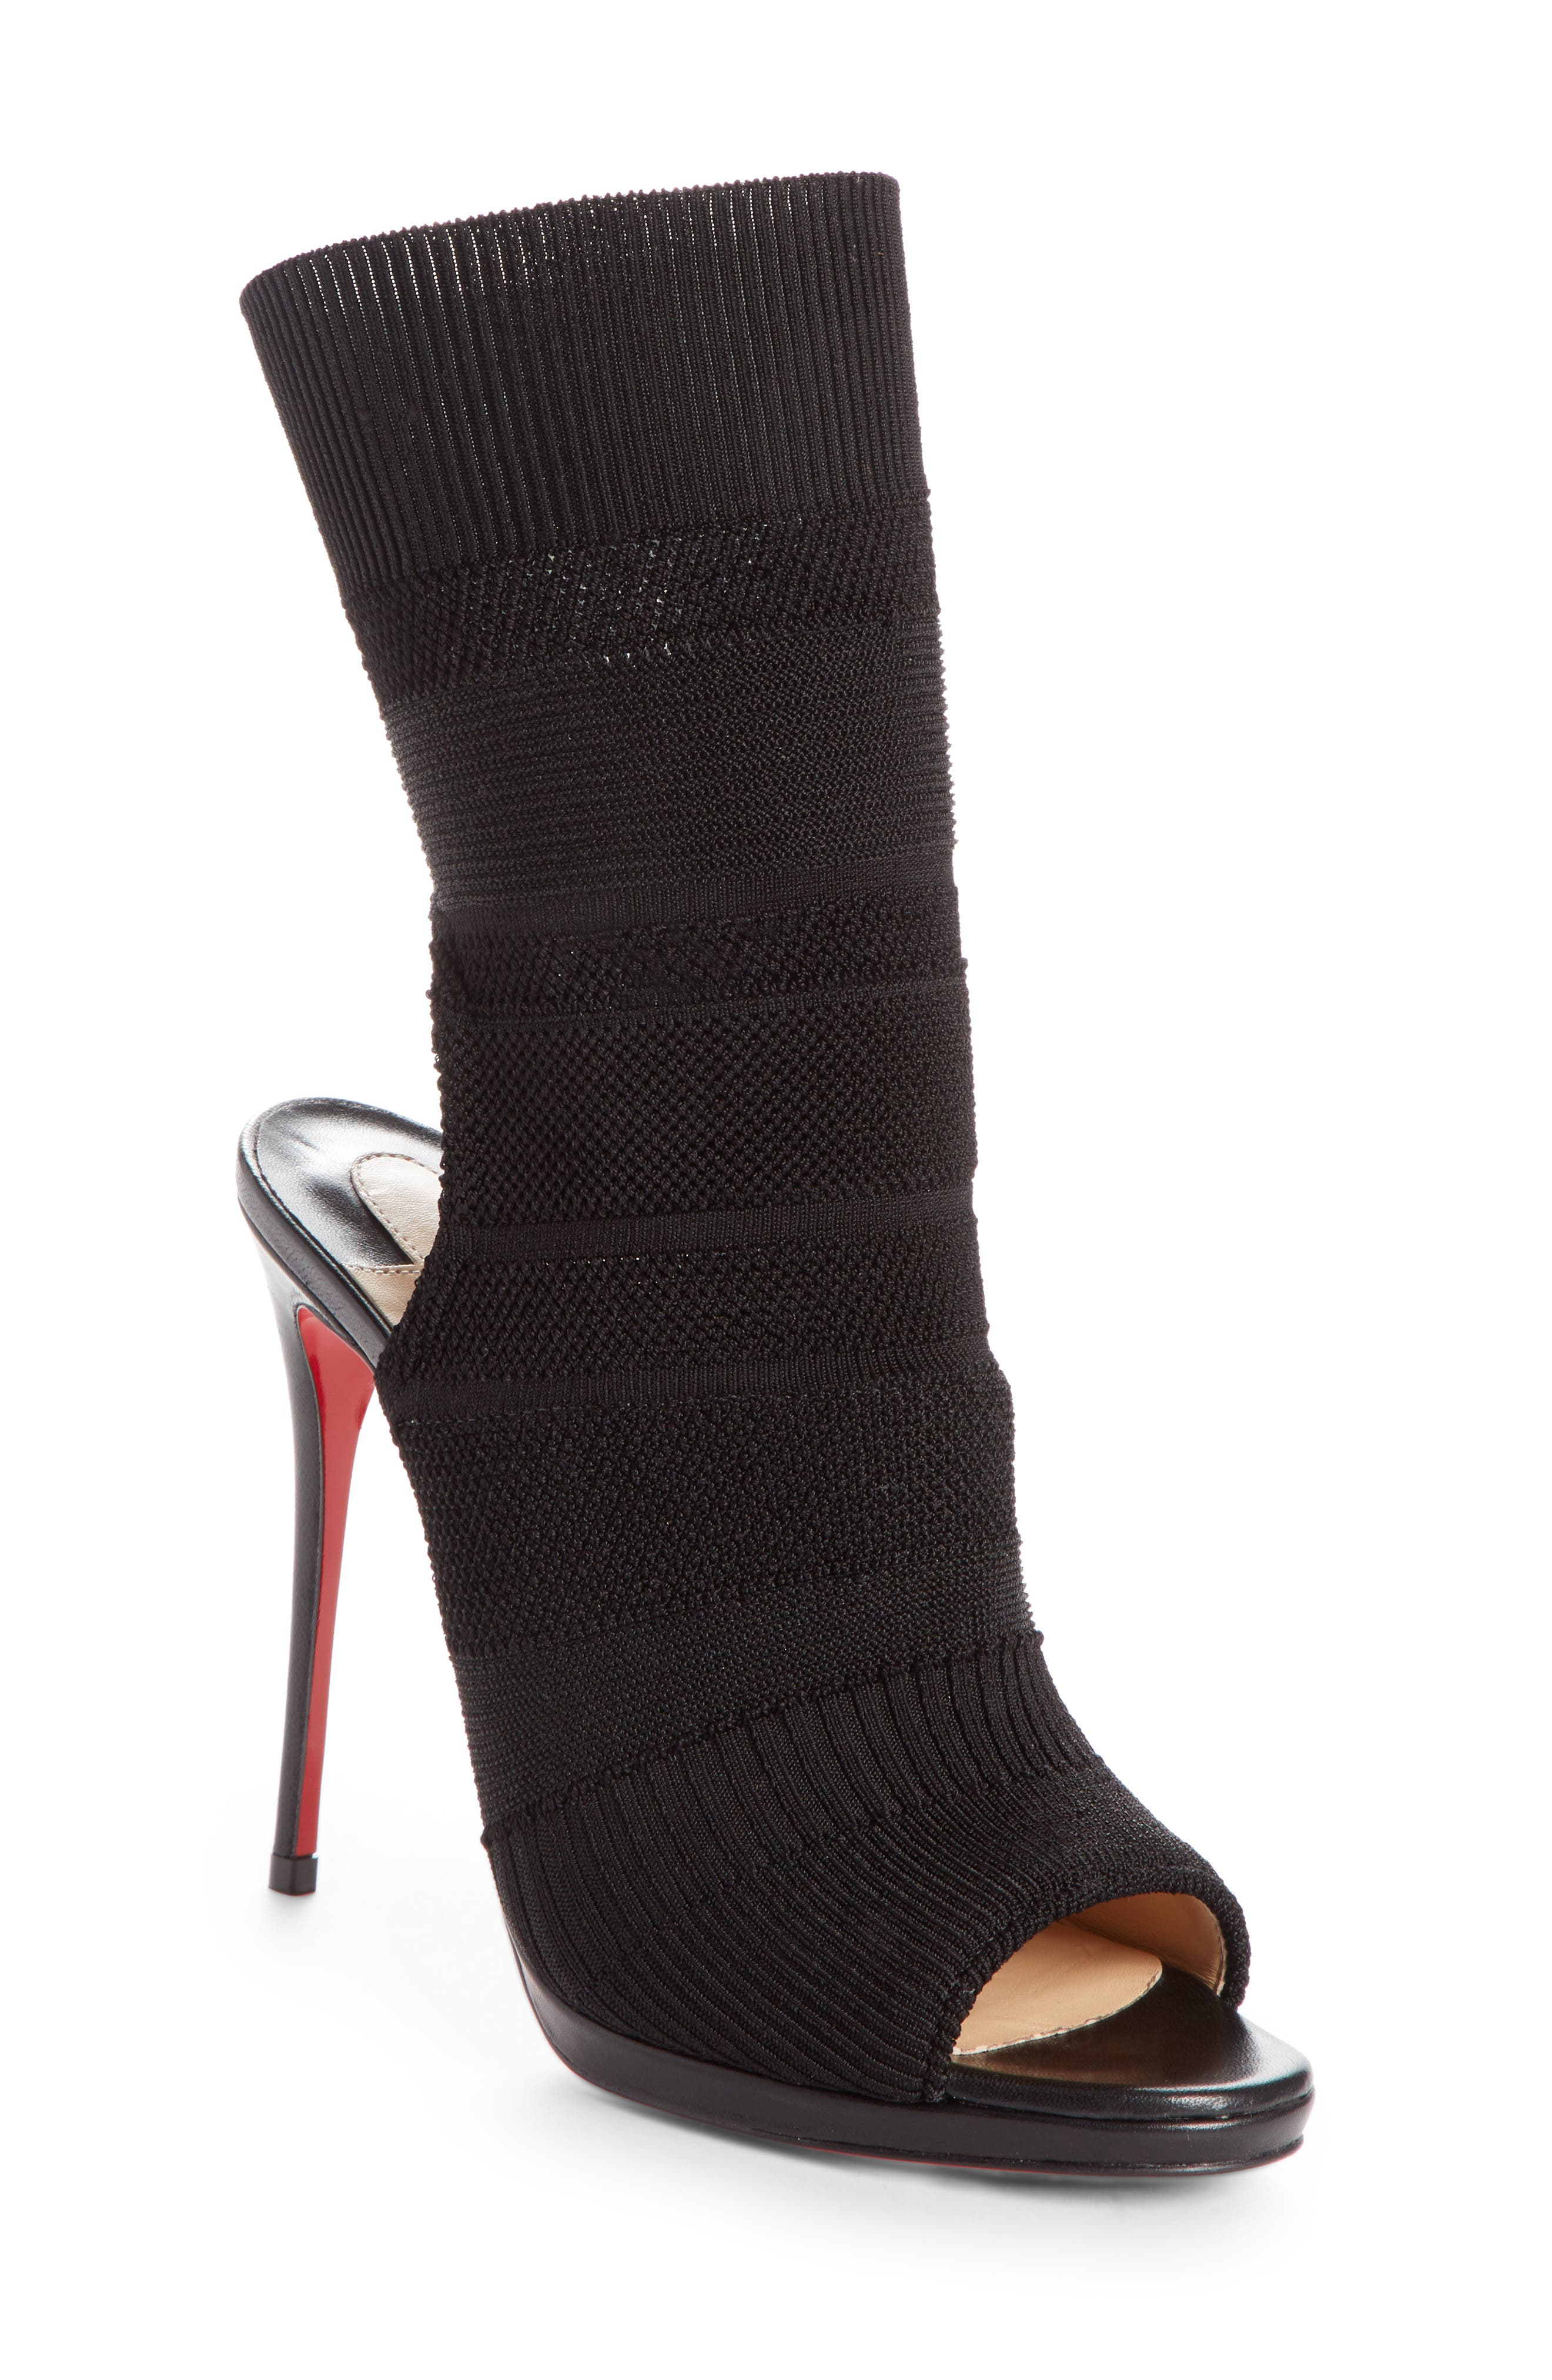 Alternate Image 1 Selected - Christian Louboutin Cheminene Sock Sandal (Women)